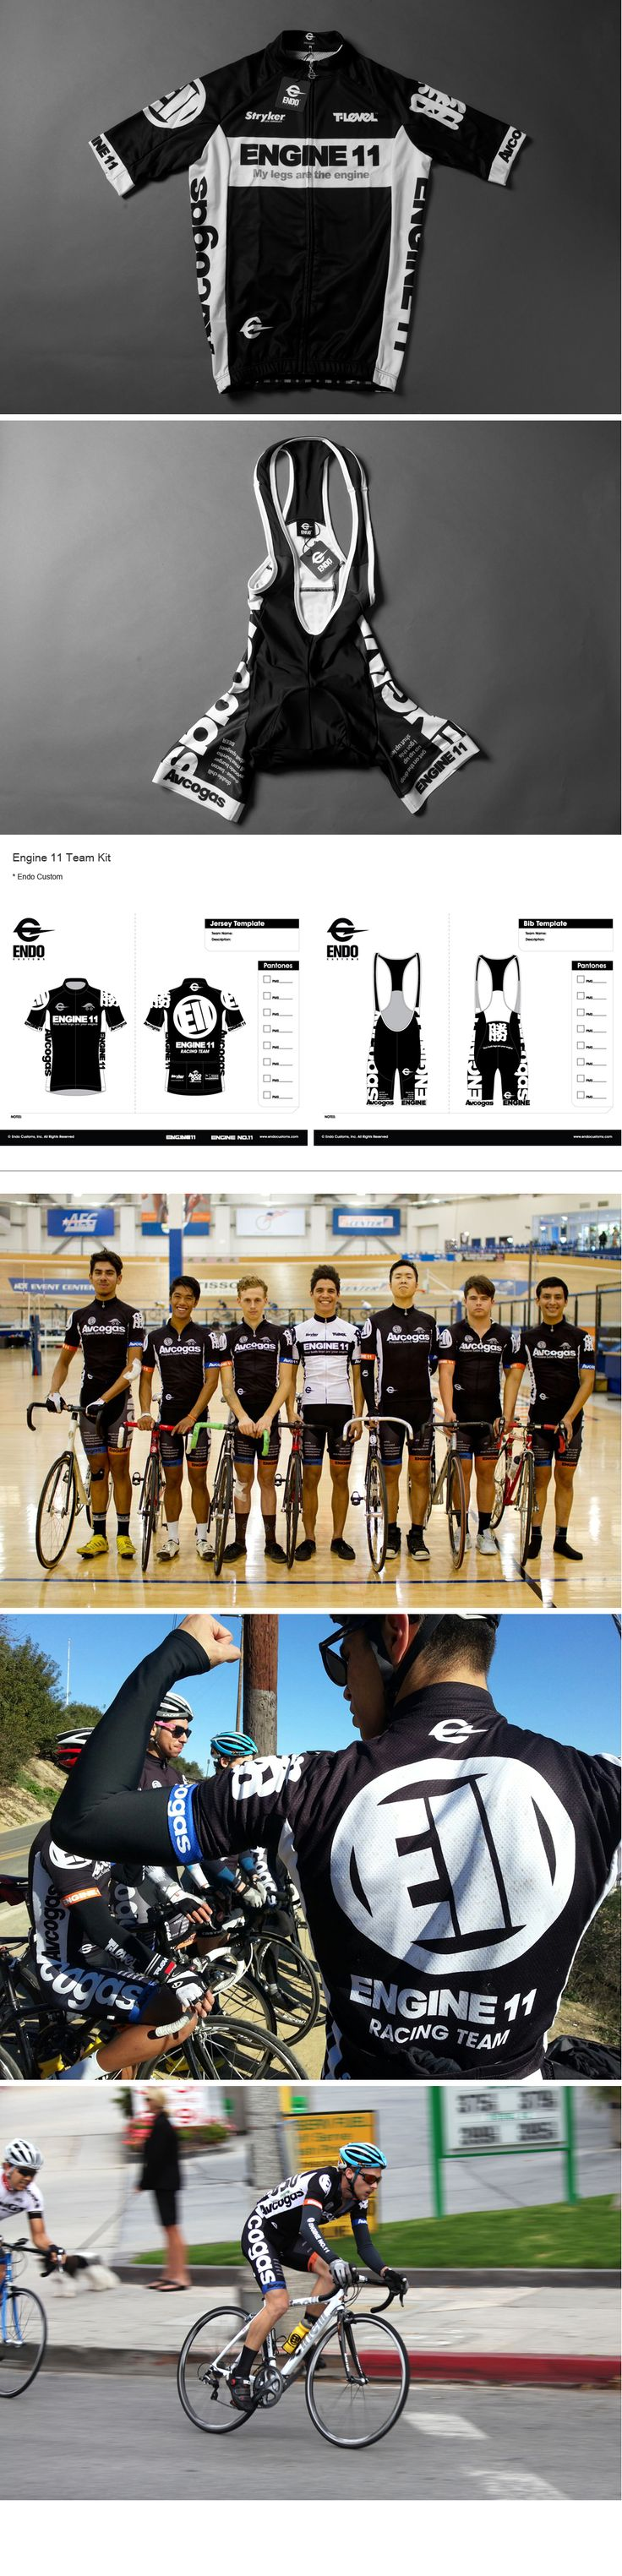 116 best cycling images on pinterest bike clothing cycling